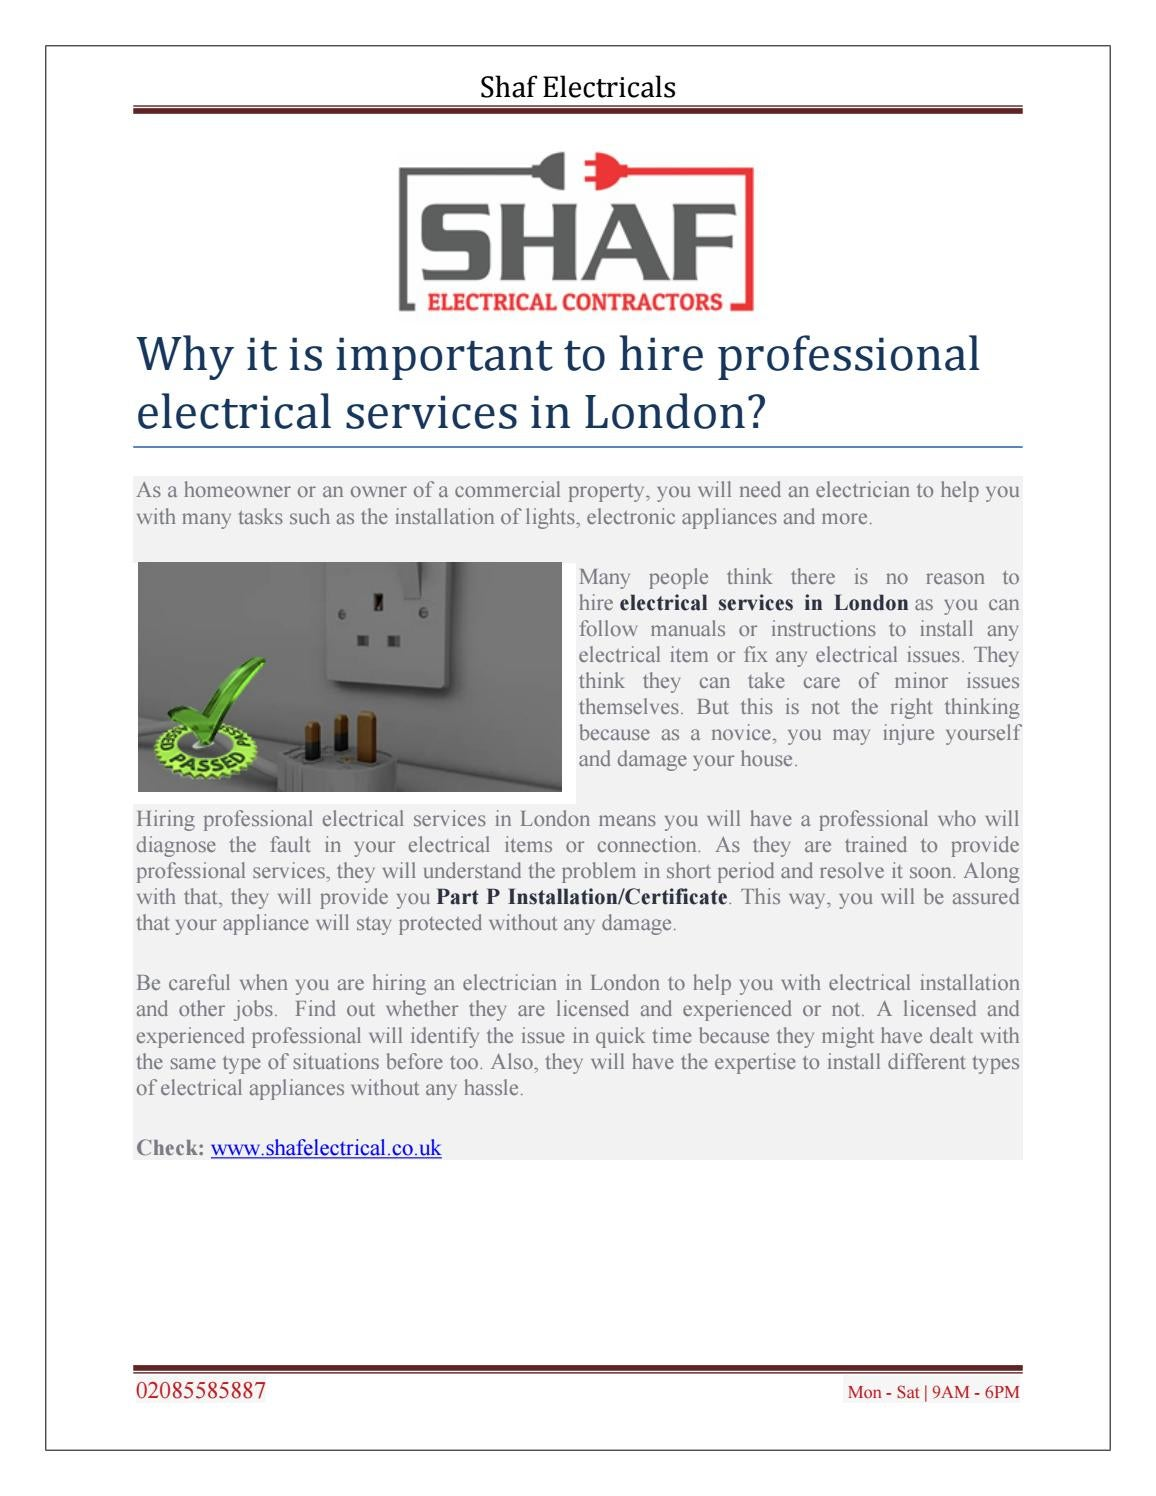 Part P Certificate >> Why It Is Important To Hire Professional Electrical Services